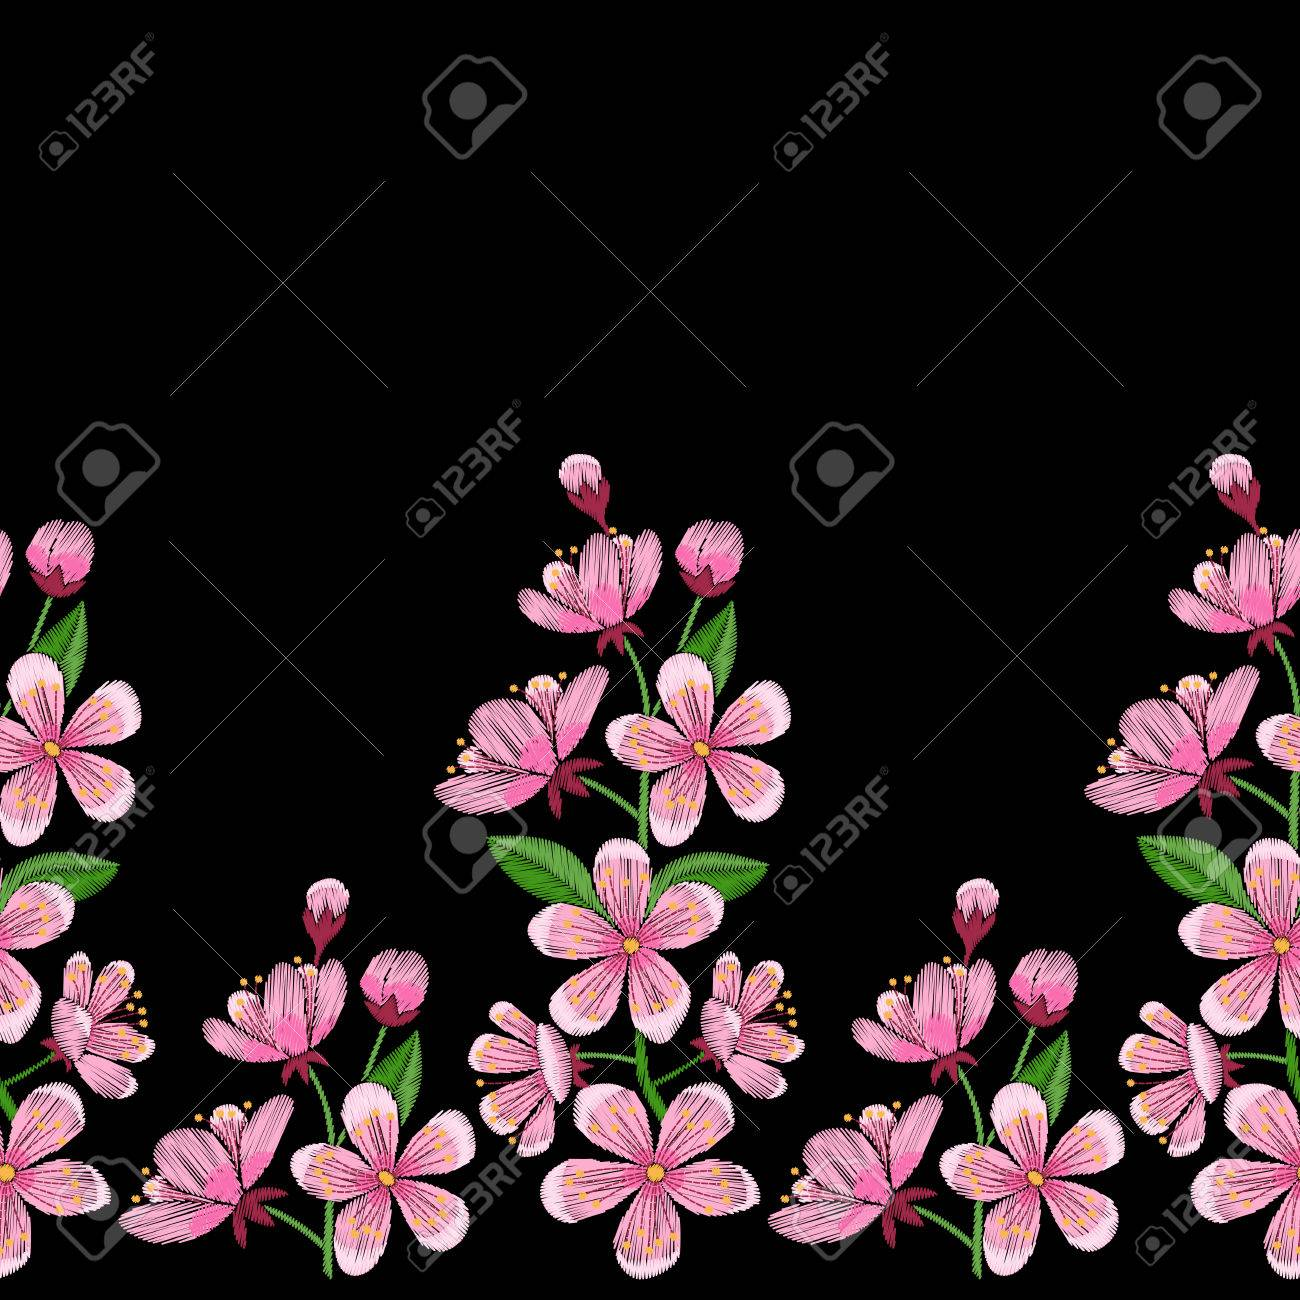 Cherry Blossom Embroidery Seamless Border Needlework Textile Wallpaper Isolated On Black Background Stock Vector